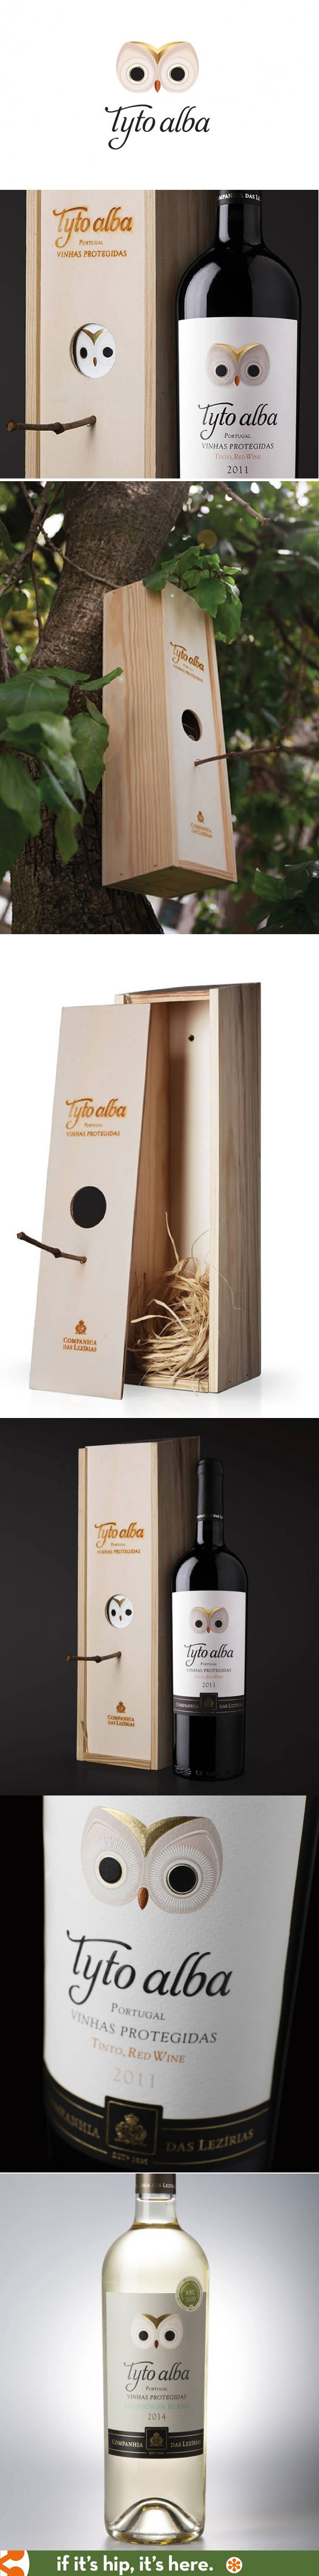 Tyto Alba Wine has some of the cutest packaging I've ever seen. Playing off the owl logo, Rita Rivotti wine branding and design has turned the wooden case into a birdhouse.